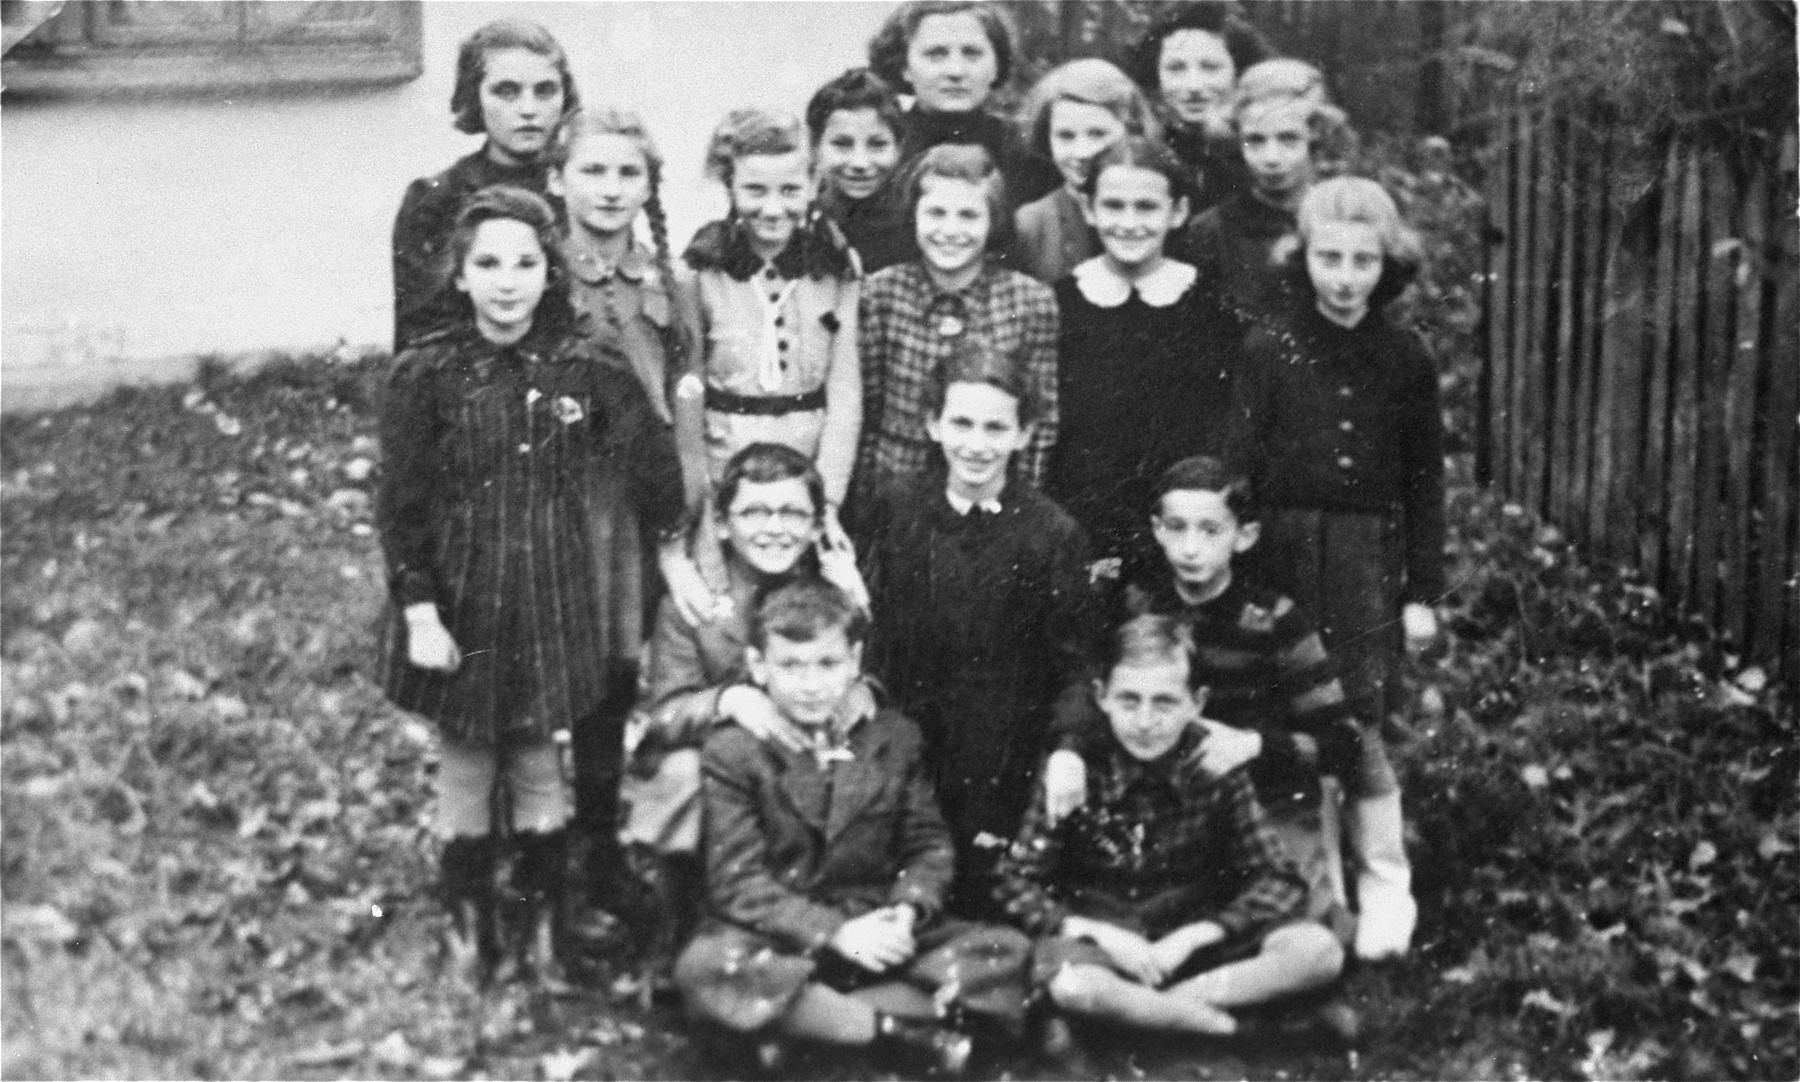 Group portrait of pupils attending a clandestine school in the Mielec ghetto.  Among those pictured are Irene Geminder (second row from the top, second from the right) and Toska Spyrina (kneeling between two boys in the second row).  The teacher stands in the top row, center.